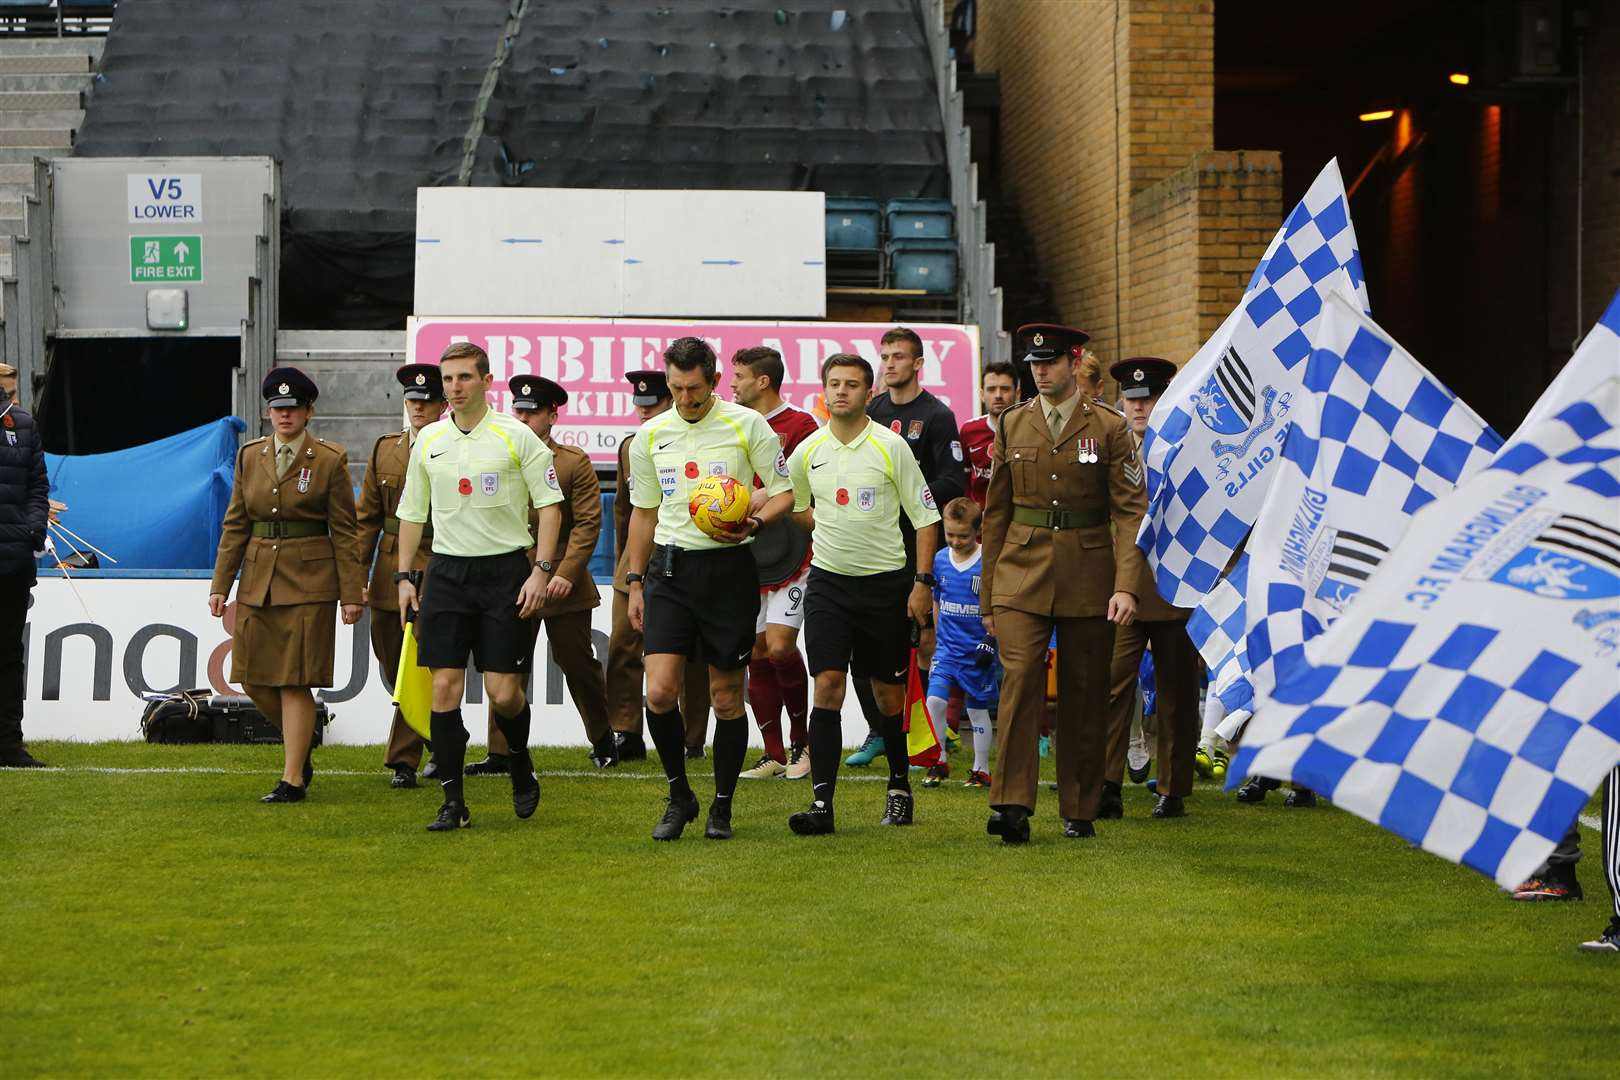 EReferee Lee Probert leads the Gills out at Priestfield against Northampton in November 2016, alongside the Royal Engineers. Picture: Andy Jones